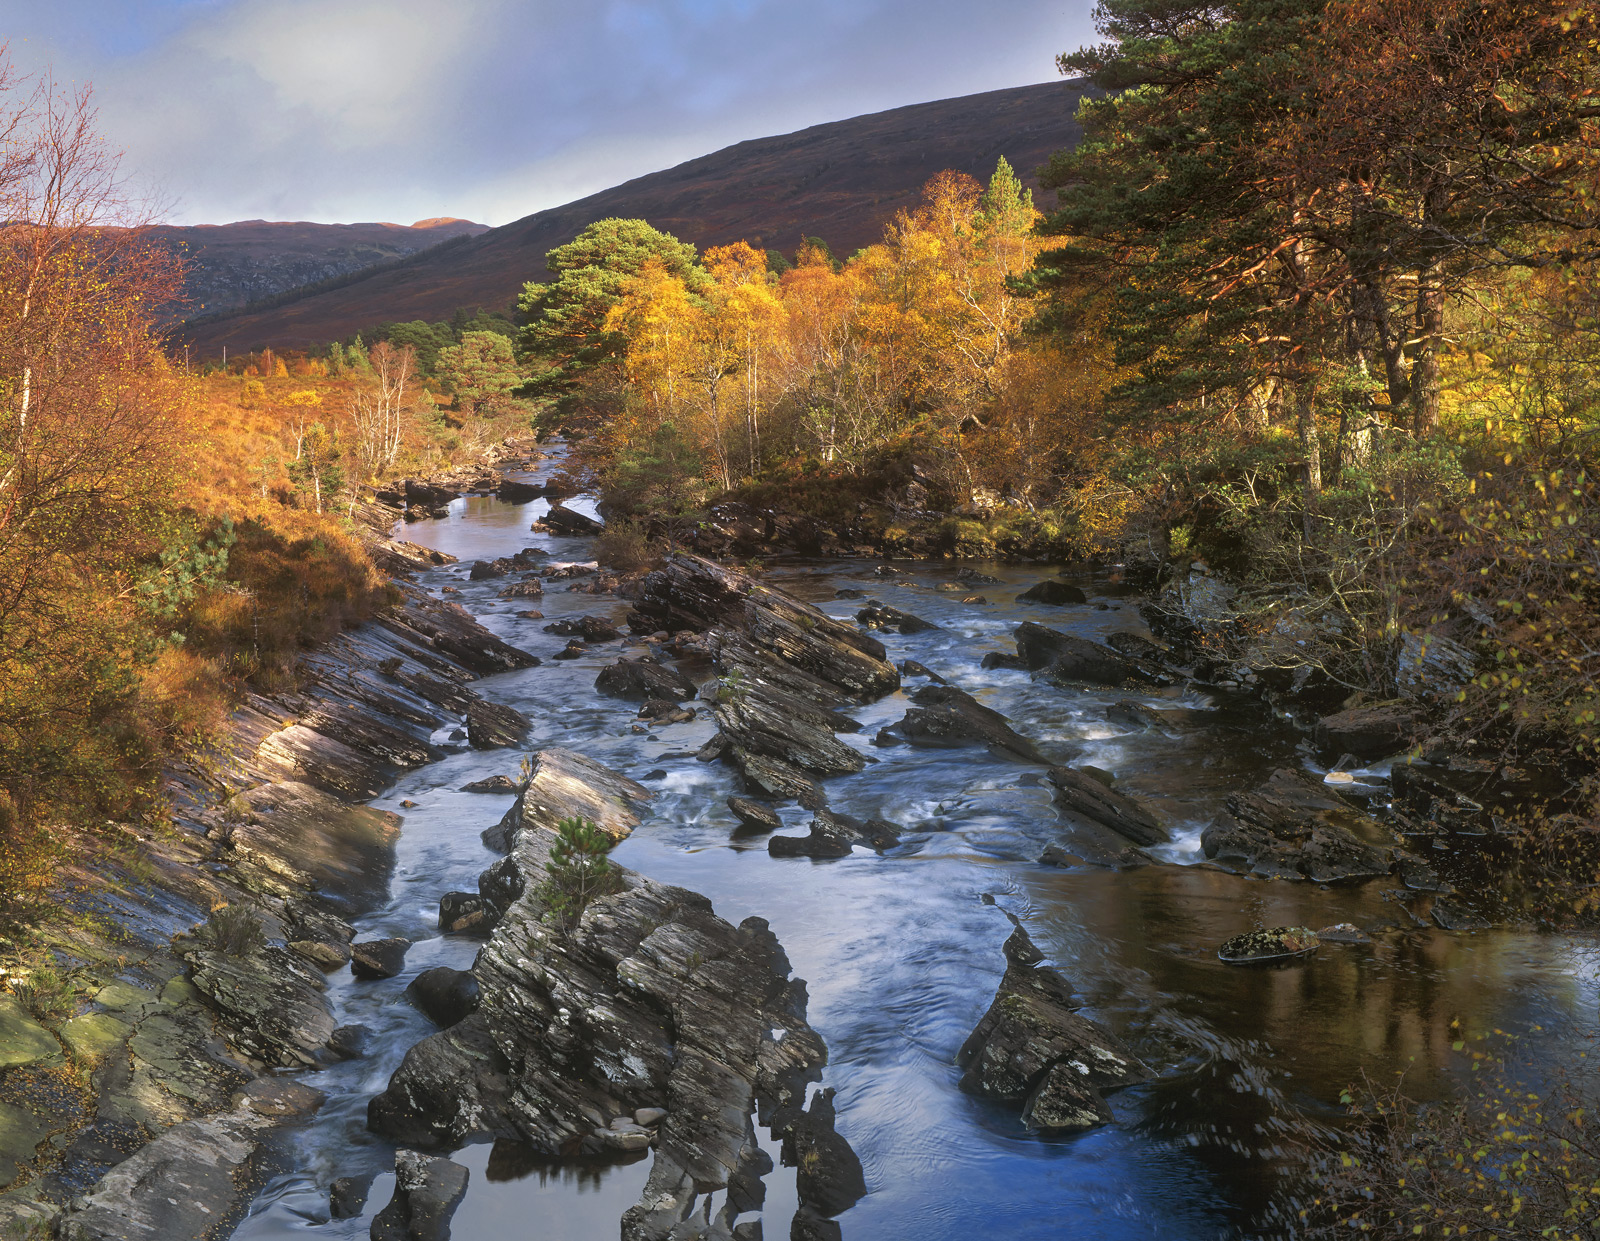 Wild River Torridon, Torridon, Ross Shire, Scotland, valley, peaks, river, gold, blue, red, browns, sky, rough, angular,, photo